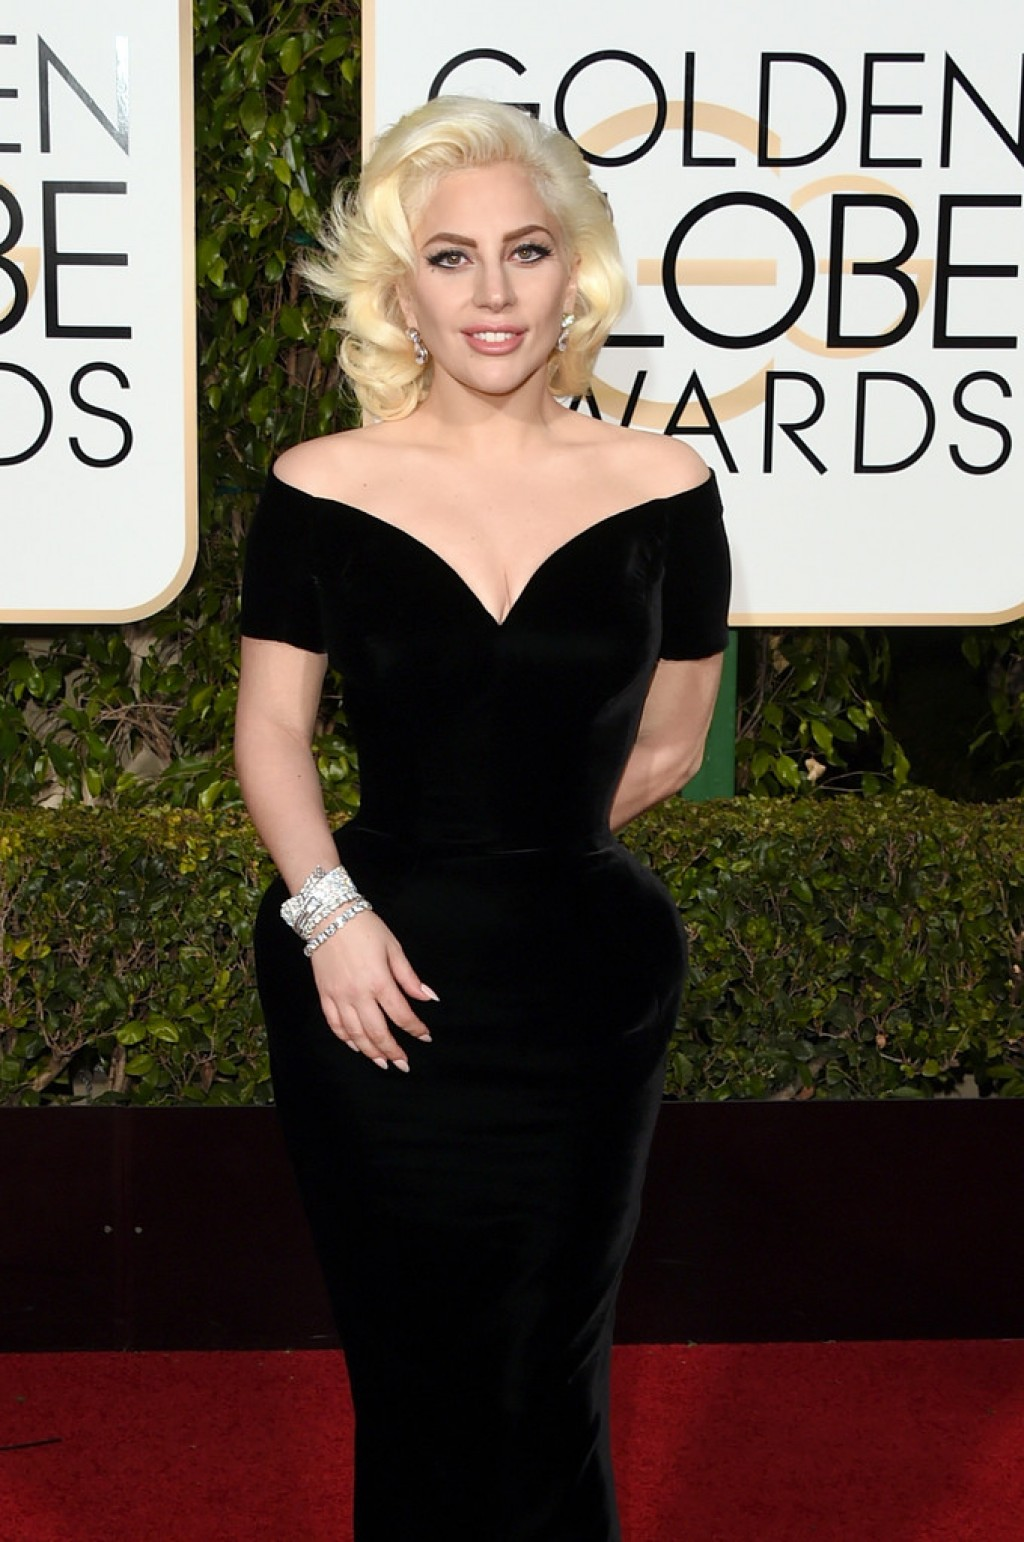 2016-Golden-Globes-Awards-Lady-Gaga-Atelier-Versace-1024x1542